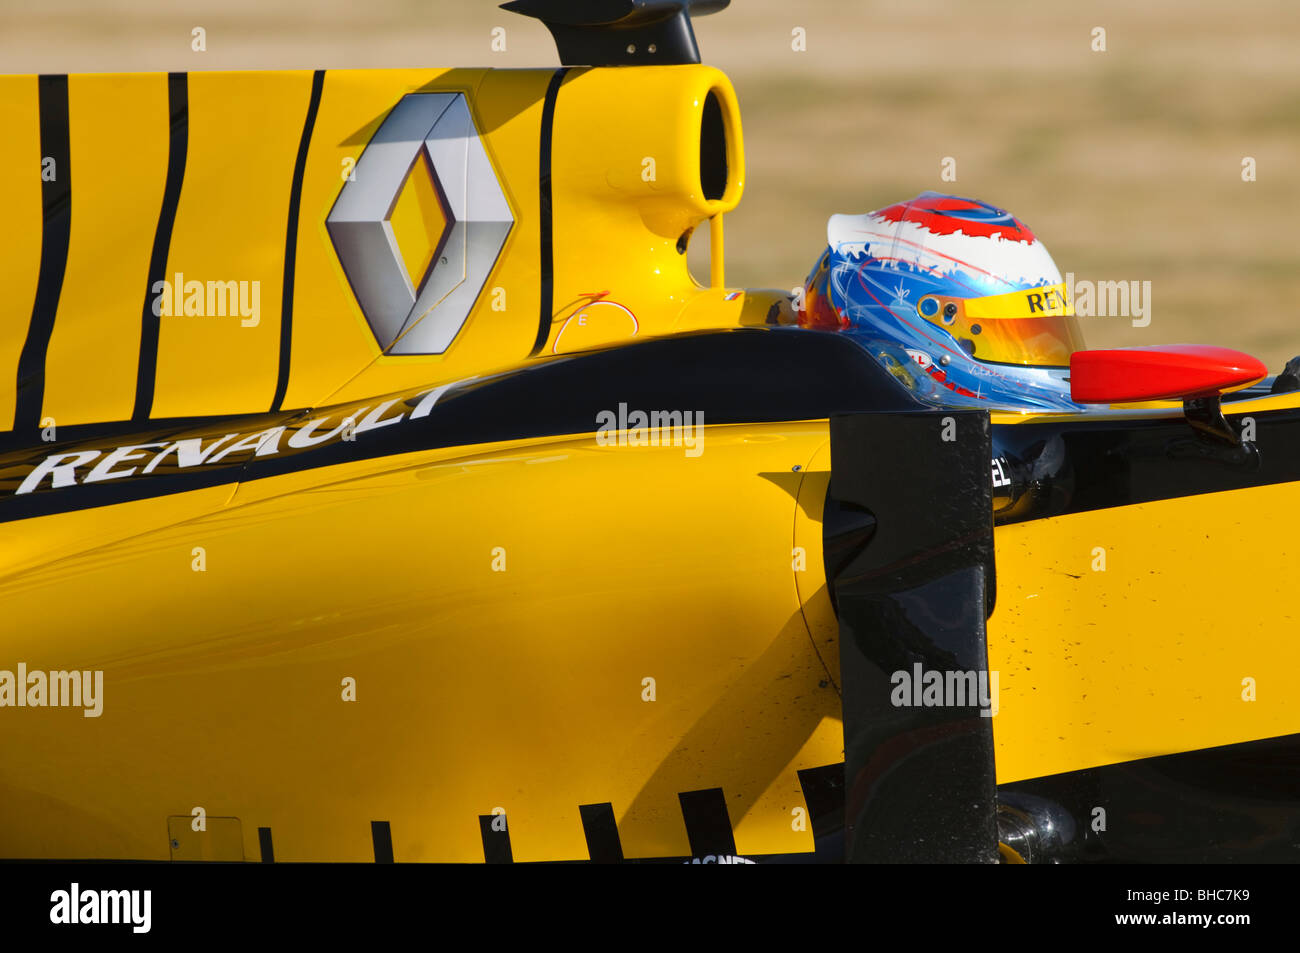 Vitaly PETROV driving the Renault R30 Formula 1 race car in February  2010 - Stock Image